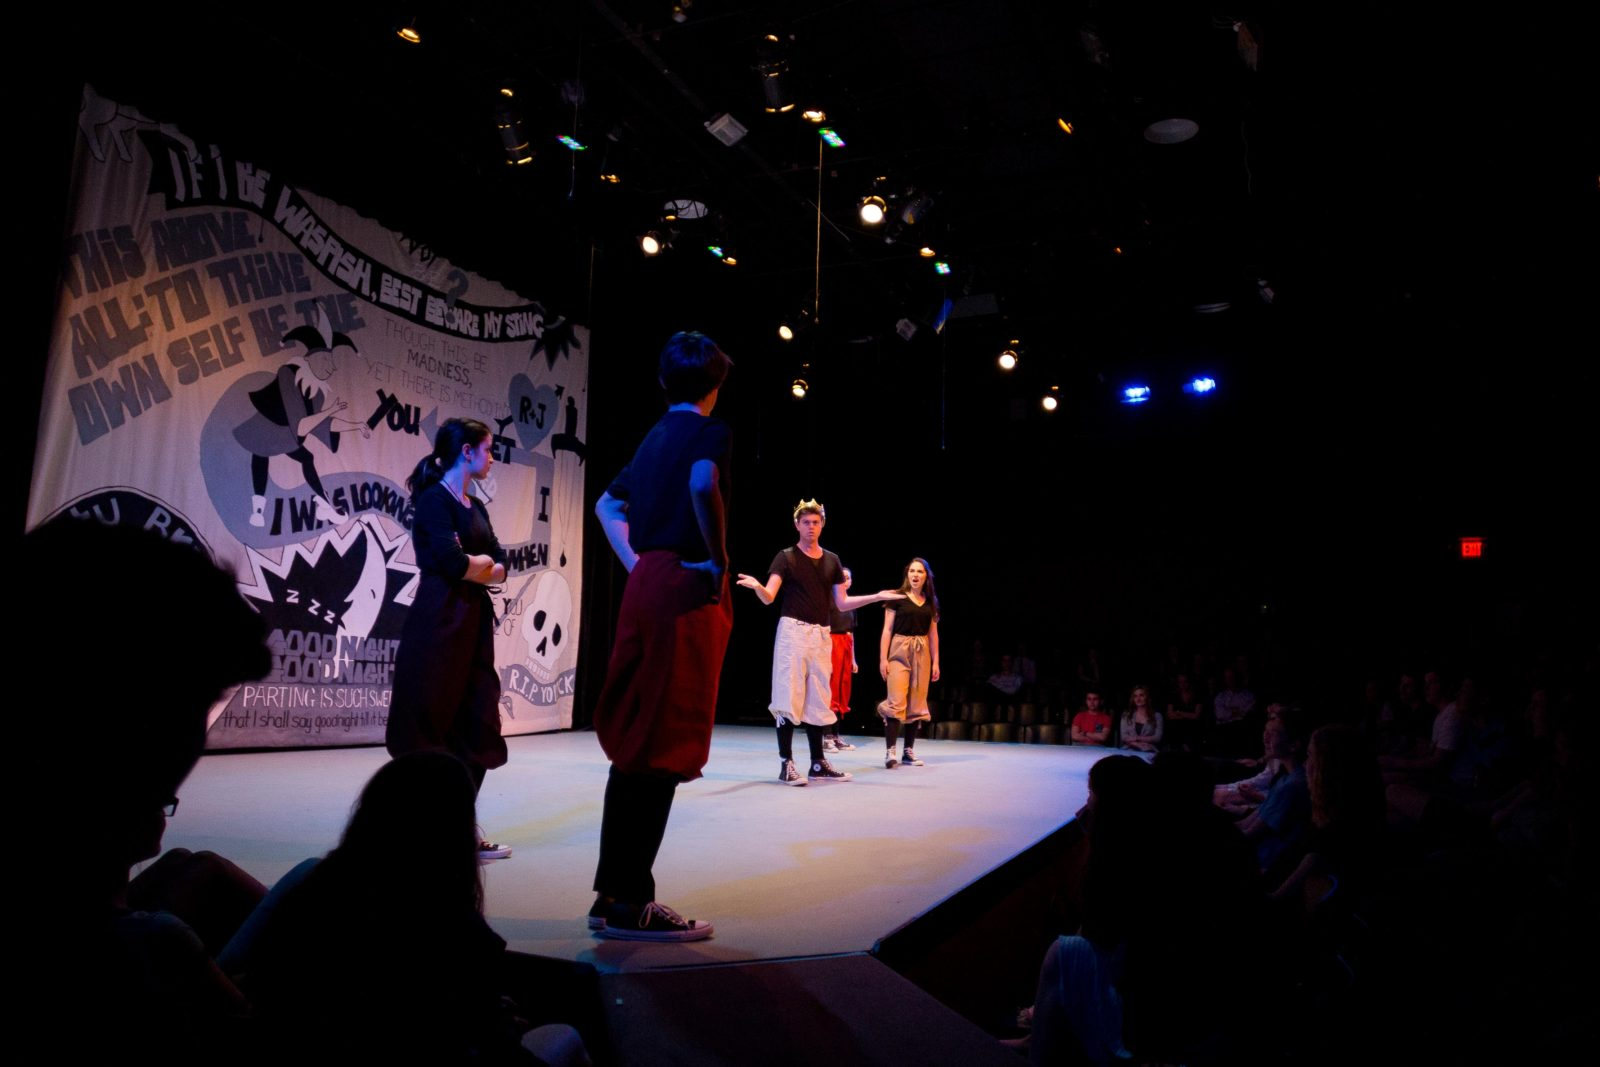 """The Shakespeare Class rehearsed """"The Complete Works of William Shakespeare, Abridged,"""" which the five-member cast performed later in the week to standing ovations. The class had been working on the production since September."""